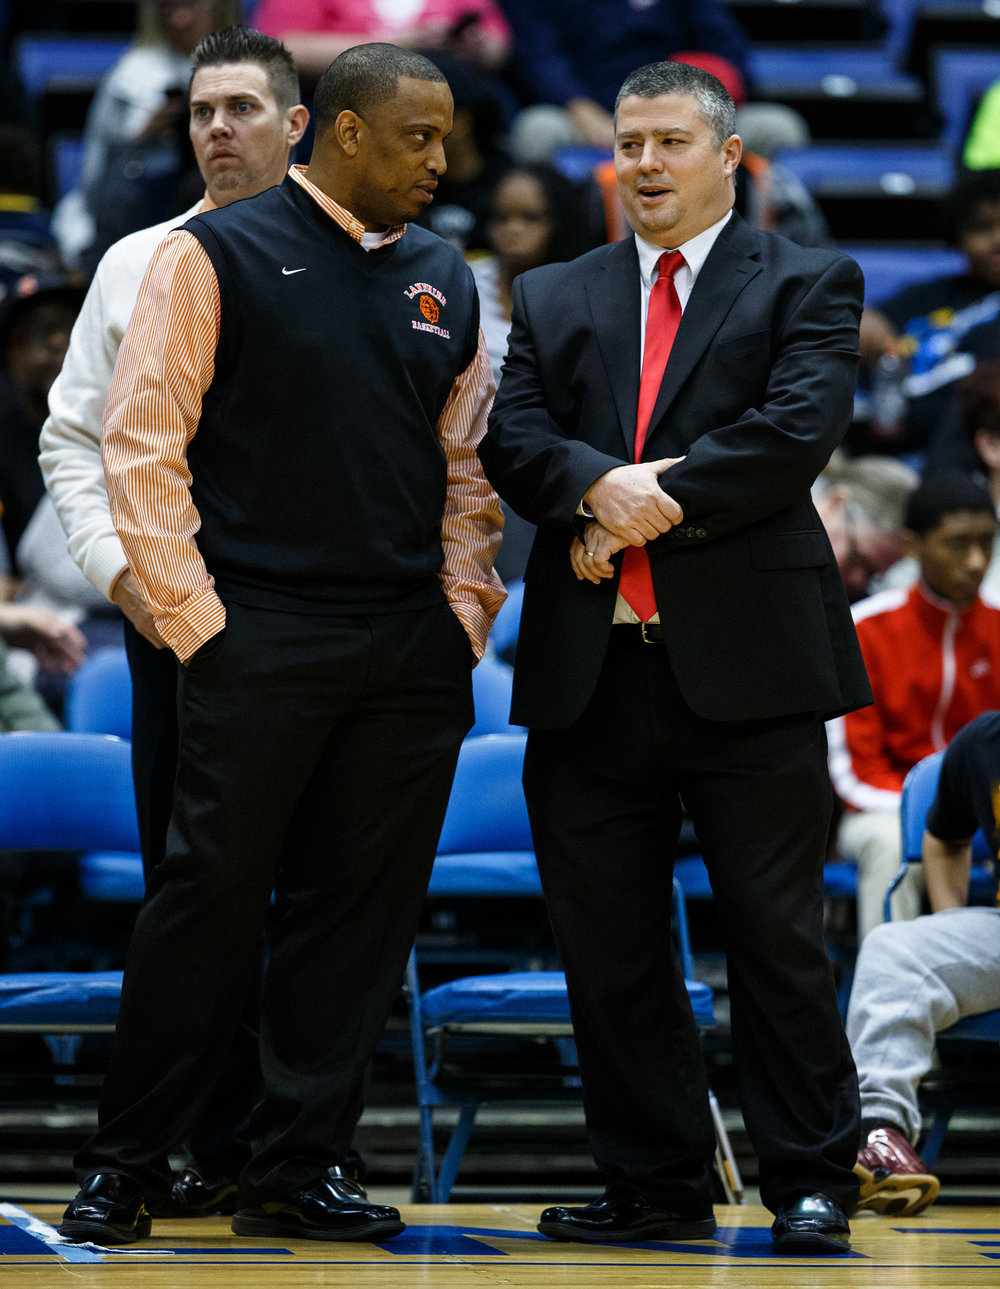 Lanphier boys basketball head coach Blake Turner talks with Springfield boys basketball head coach Joby Crum prior to second game of the night during the Boys City Basketball Tournament at the Prairie Capital Convention Center, Thursday, Jan. 19, 2017, in Springfield, Ill. Justin L. Fowler/The State Journal-Register